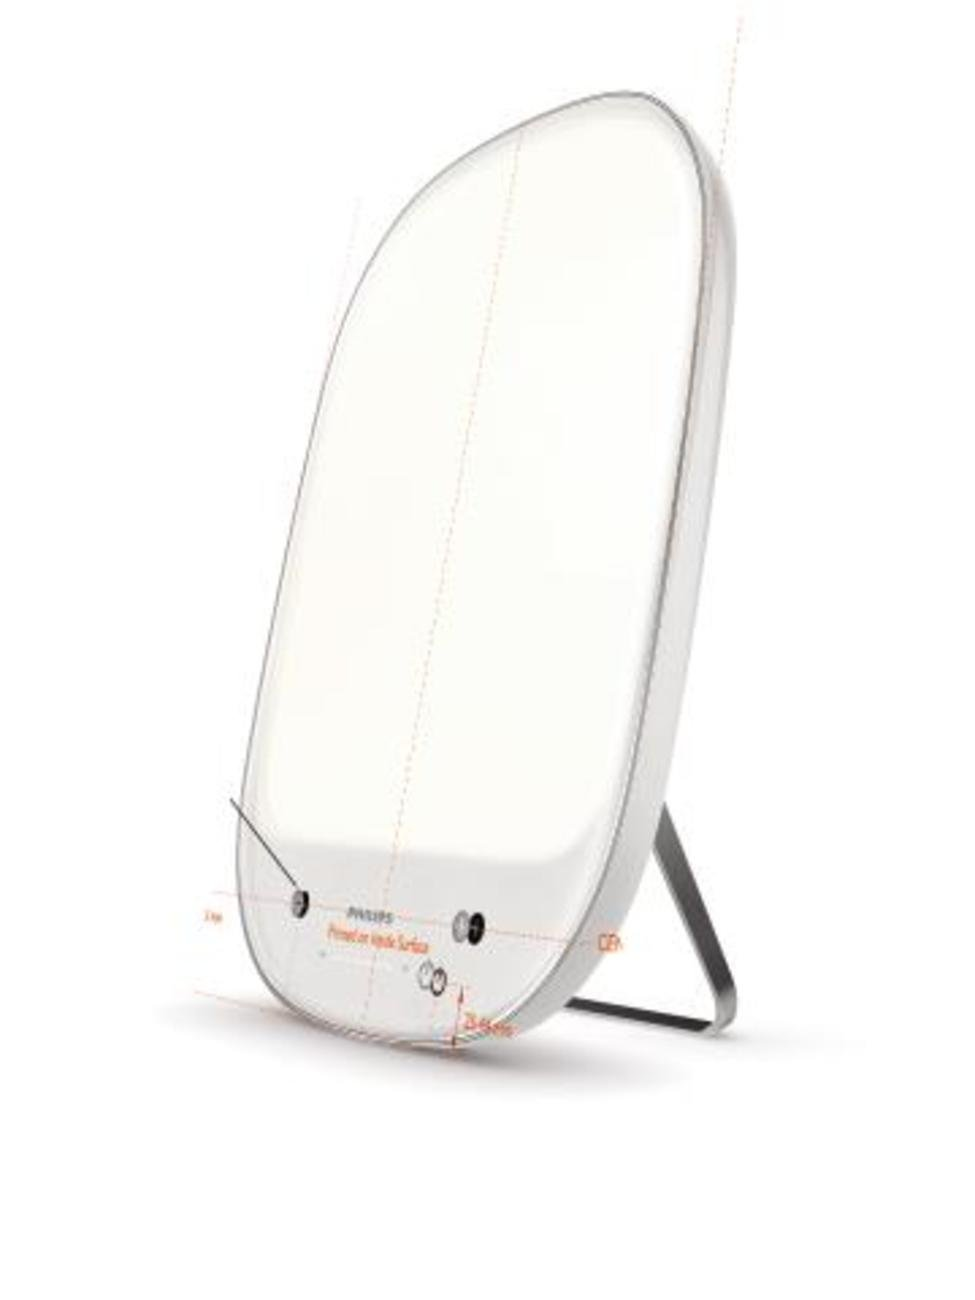 Philips Natural Energy White Light Therapy Medical Grade, White/Silver HF3418/60 by Philips (Image #2)